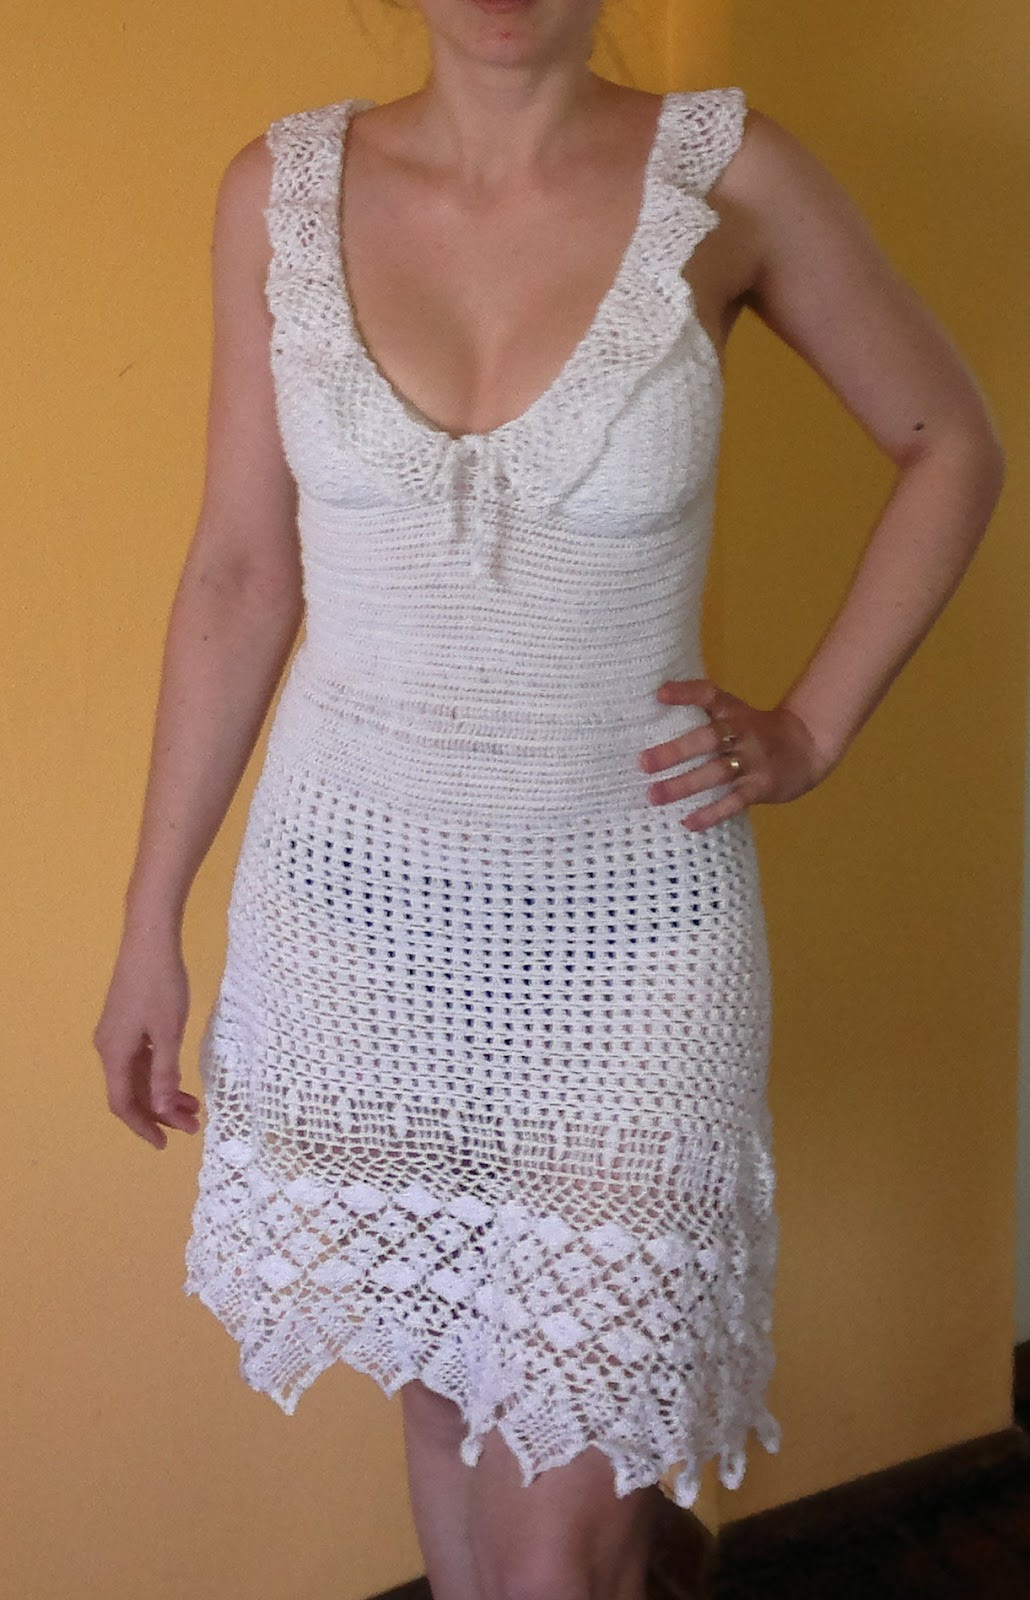 Crochet top Dress Beautiful White Crocheted Summer Dress as Seen On Jennifer Aniston Of Incredible 41 Models Crochet top Dress